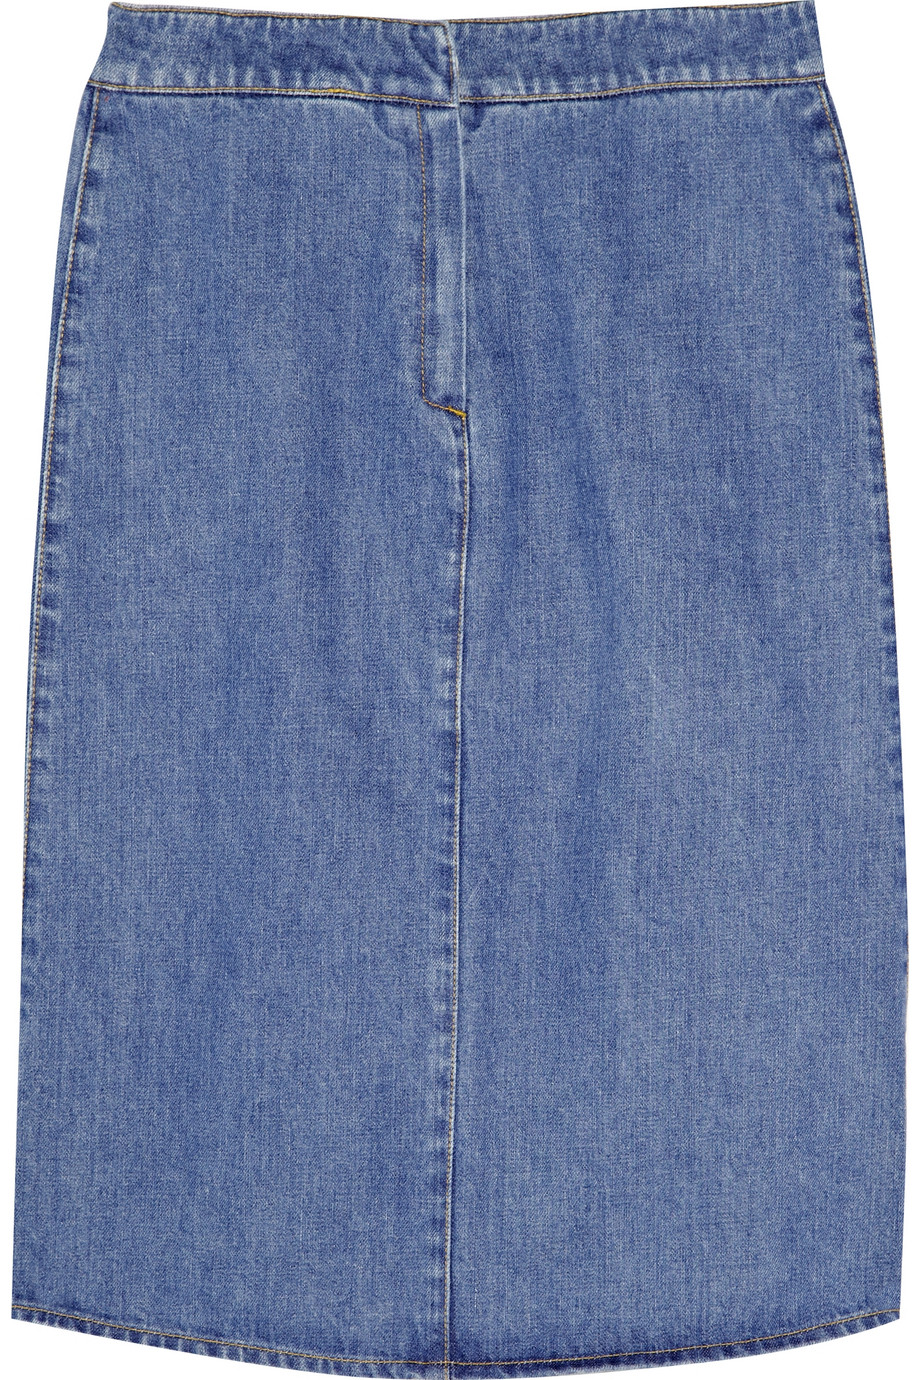 stella mccartney mid length denim skirt in blue lyst